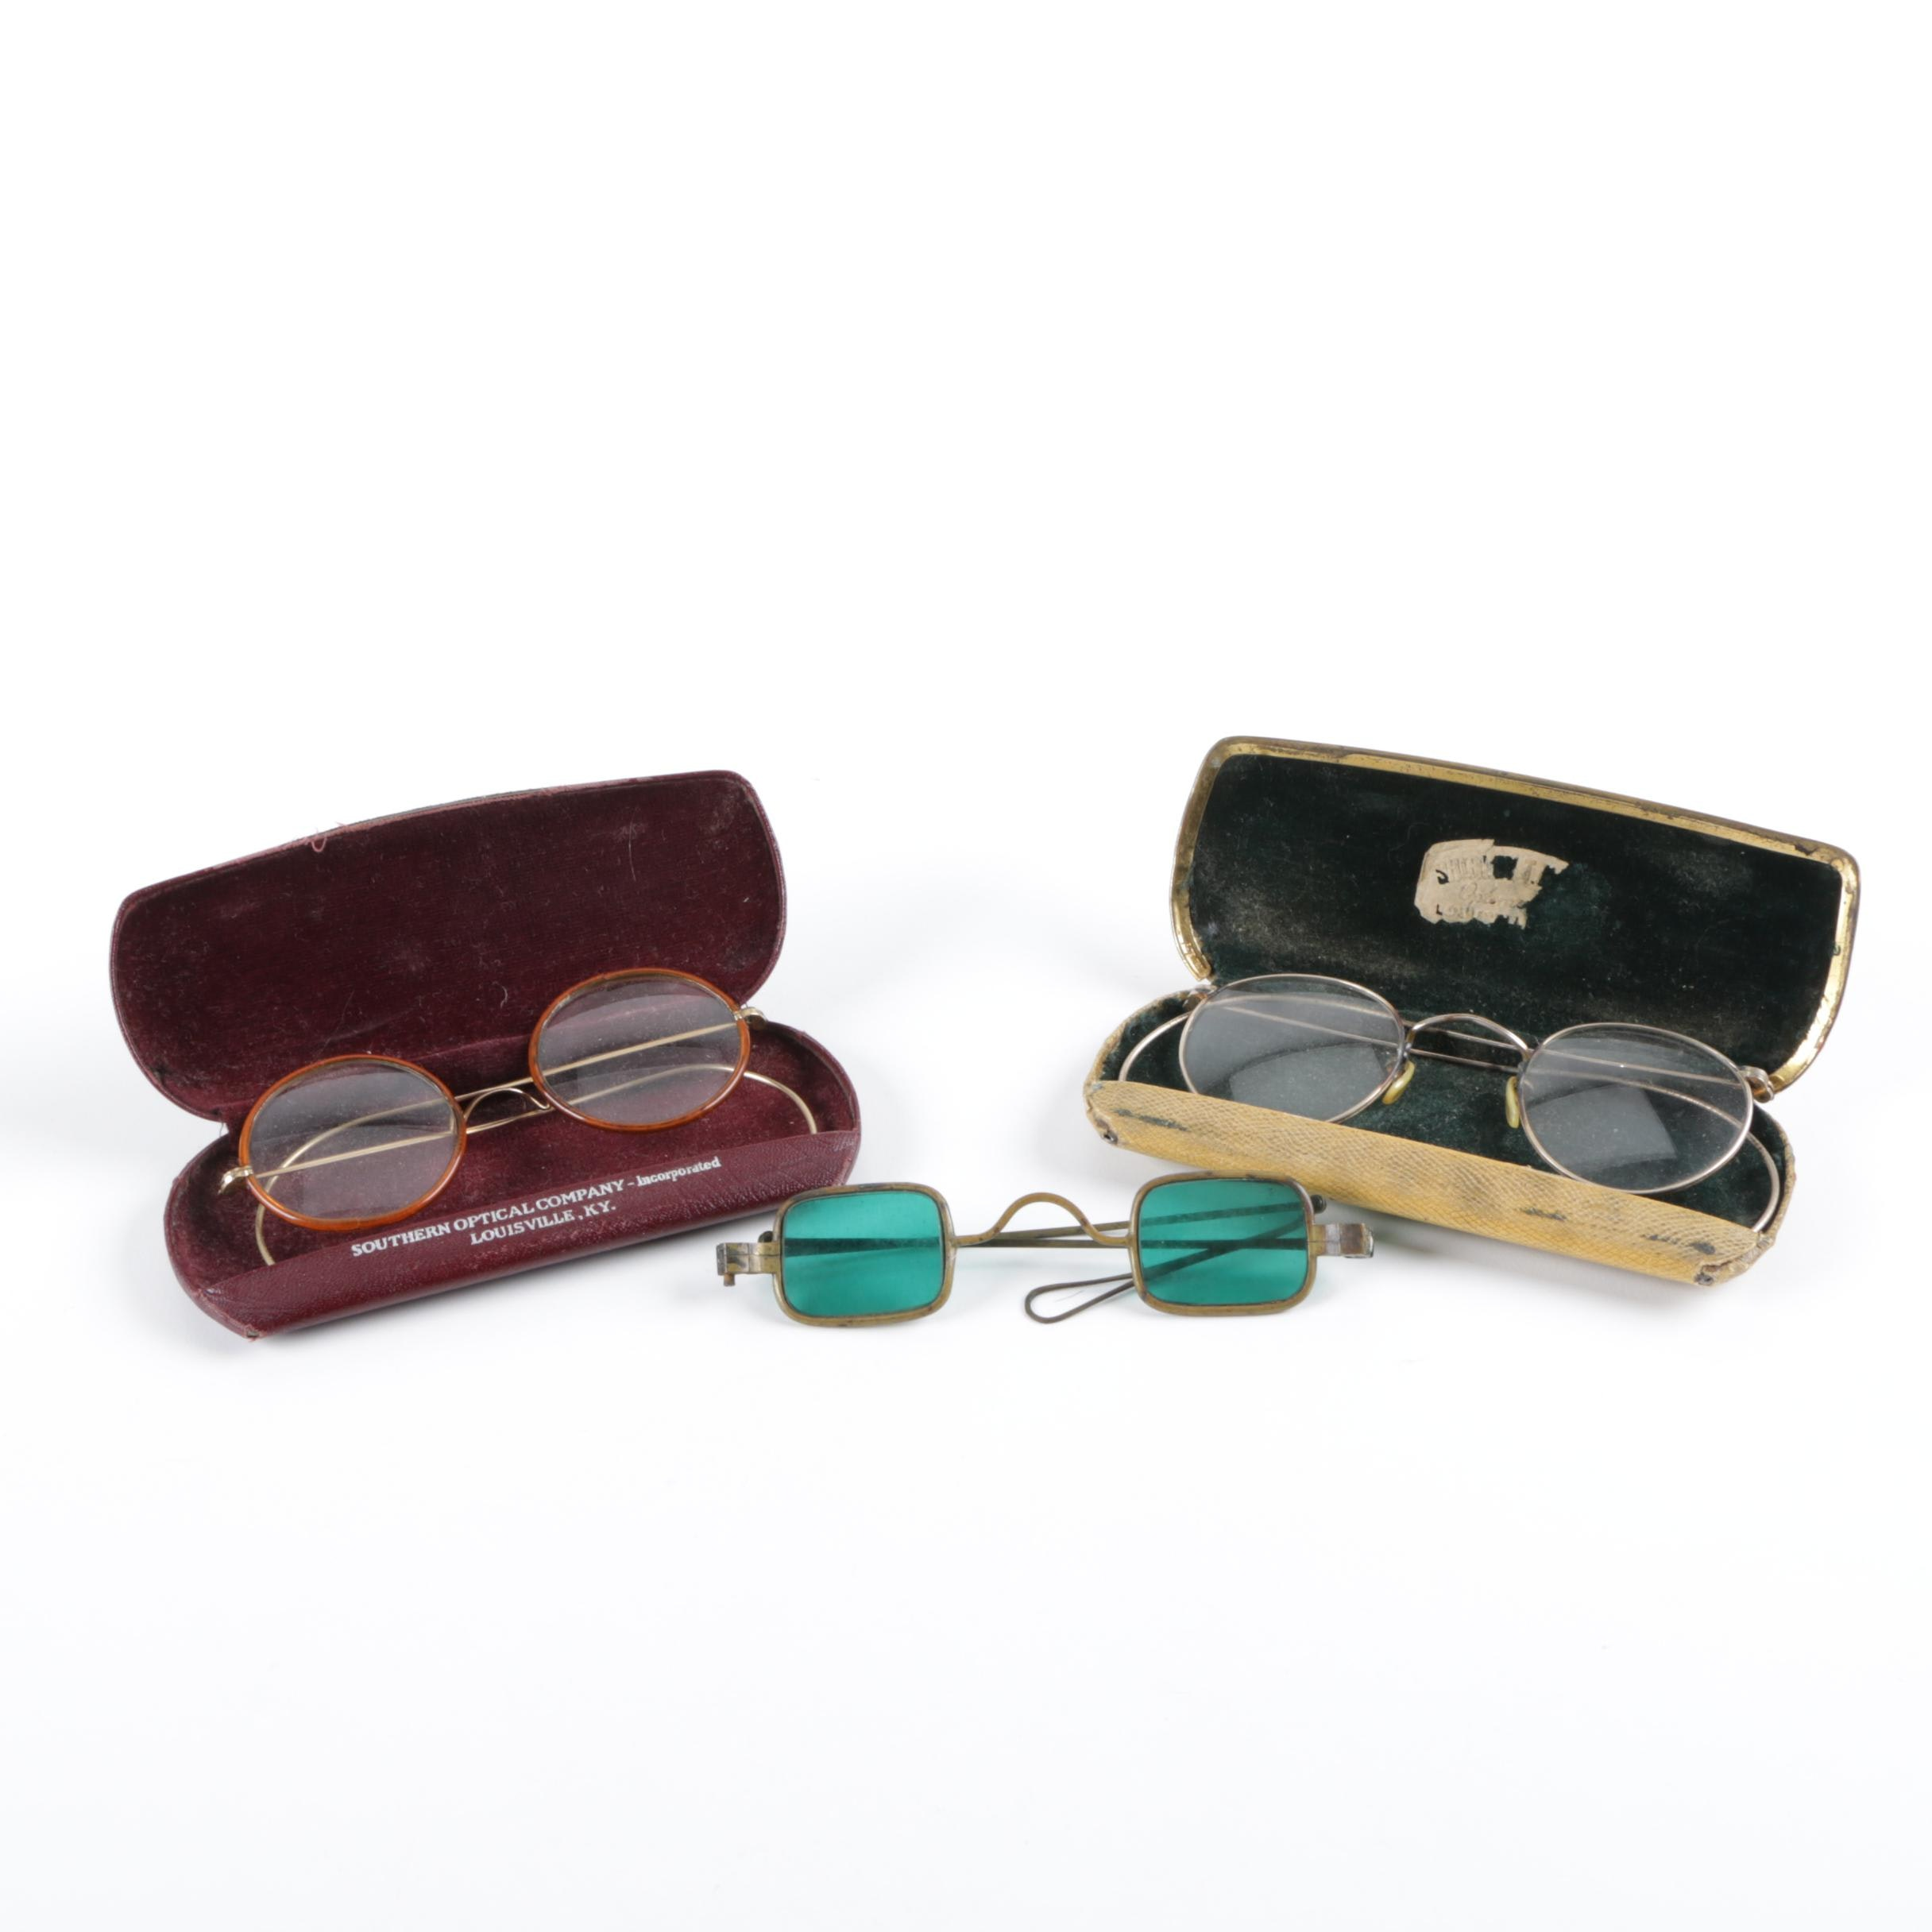 Vintage Eyeglasses and Cases